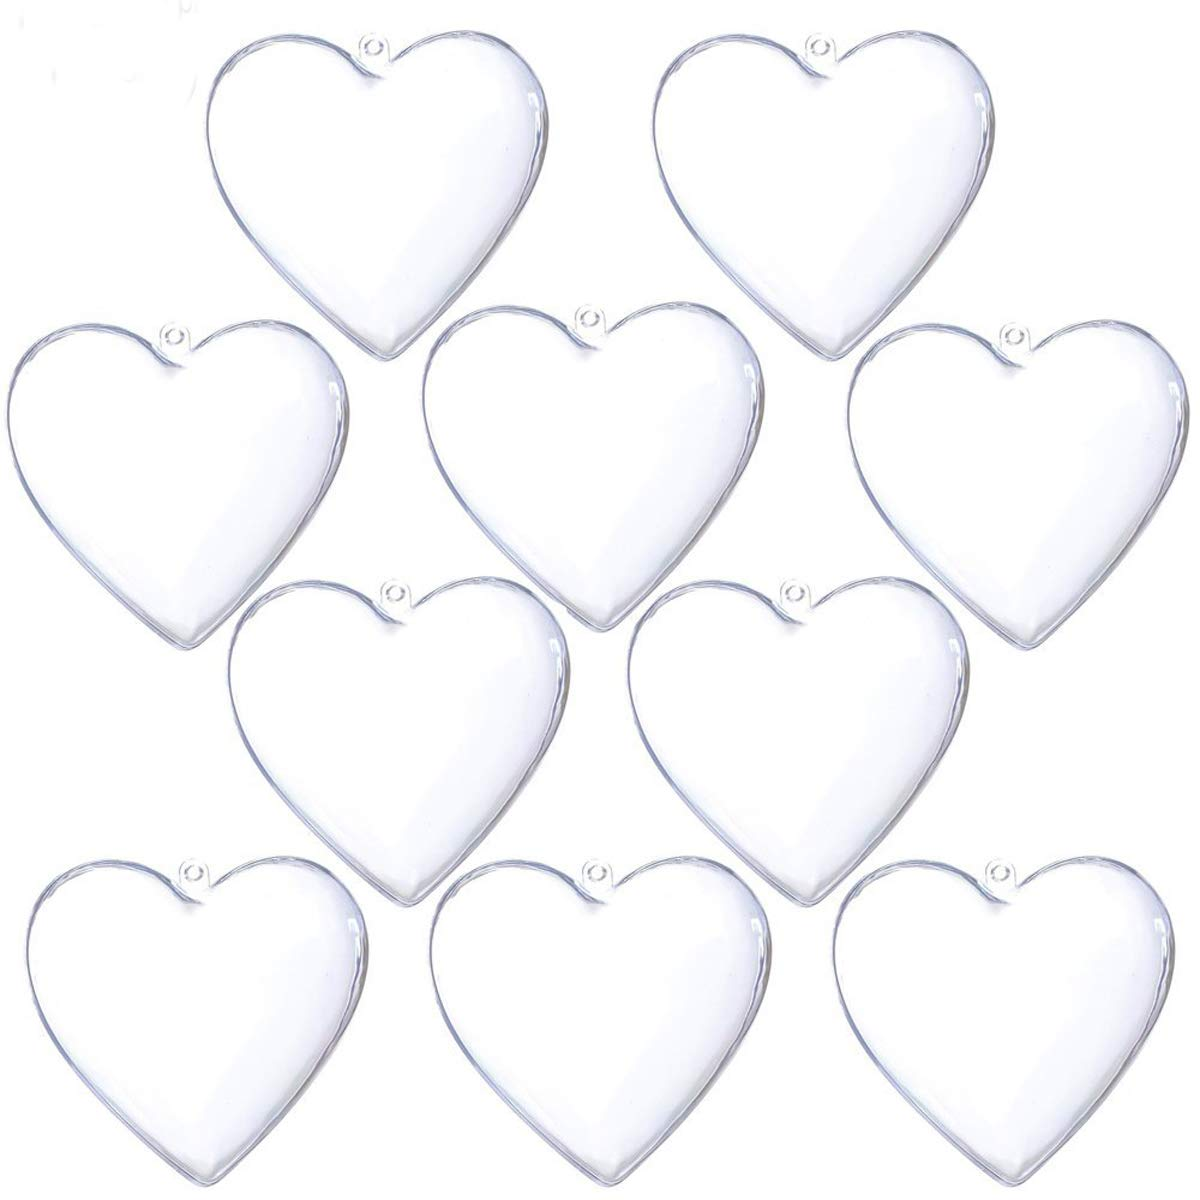 Clear Plastic Fillable Christmas DIY Craft Ball Ornaments 10 pcs 3.94 inch (Heart)